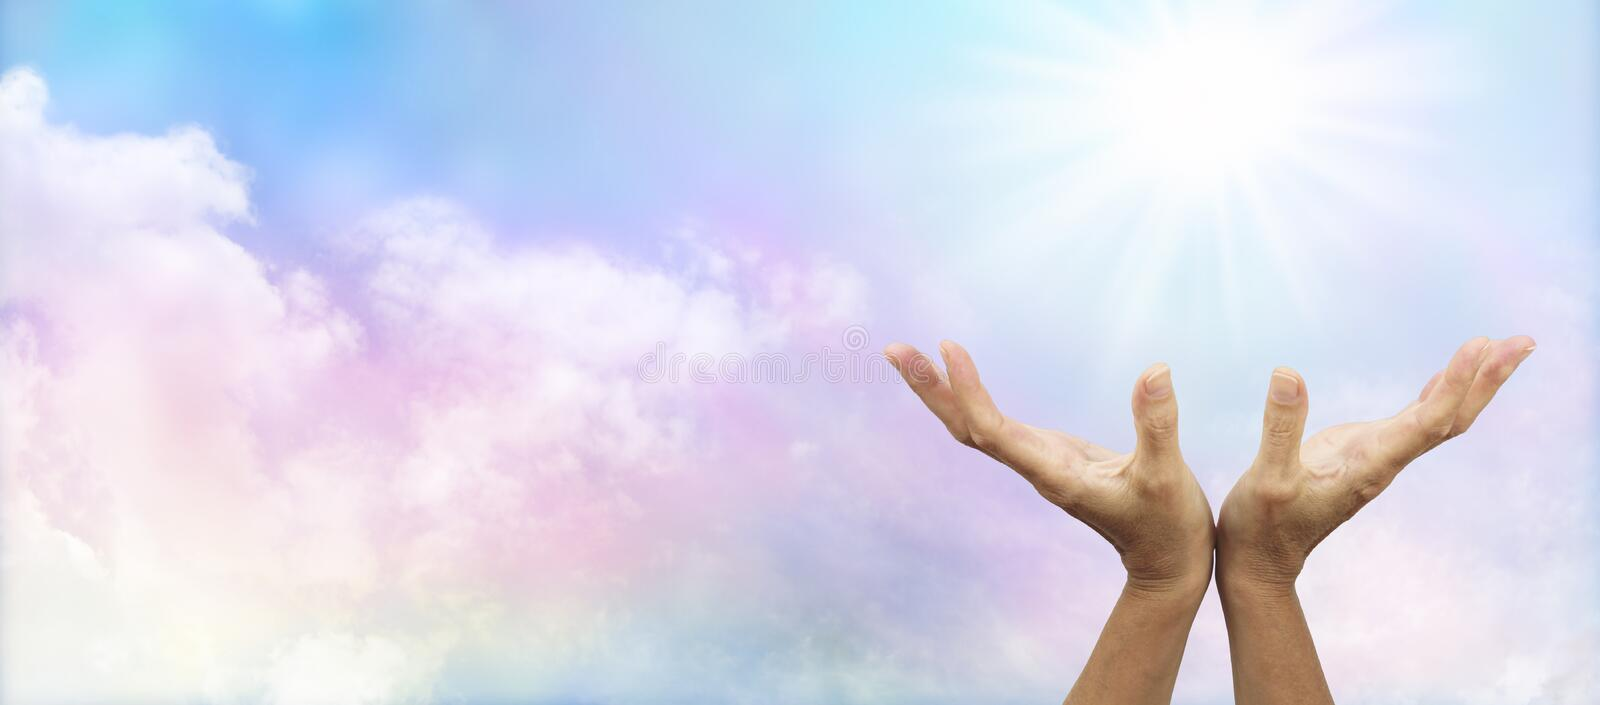 Healing Hands outstretched towards sun royalty free stock photography